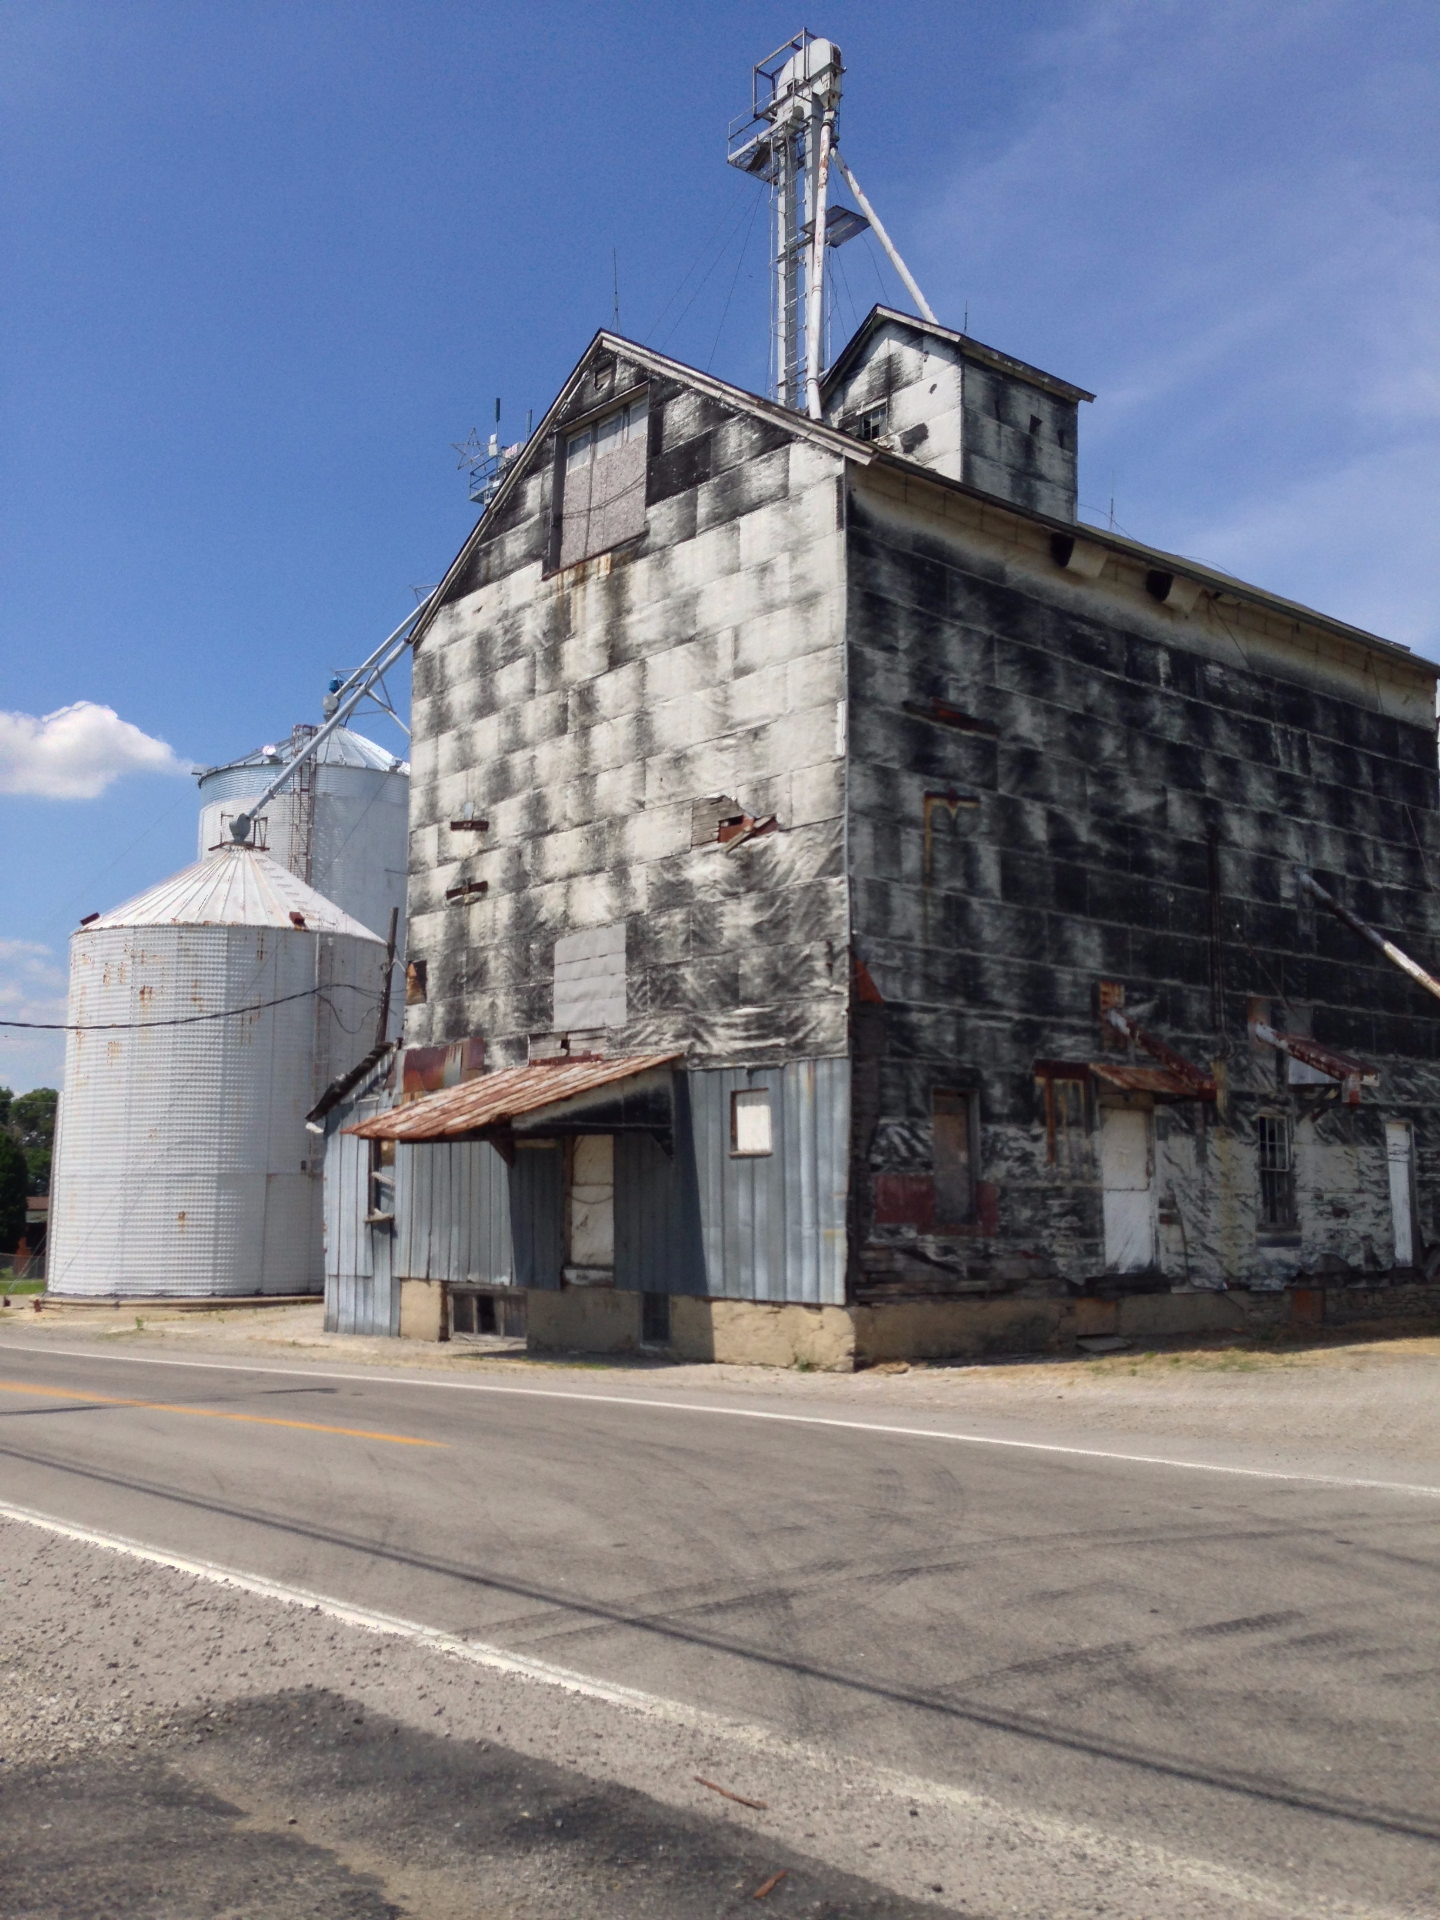 Grainery - Ohio